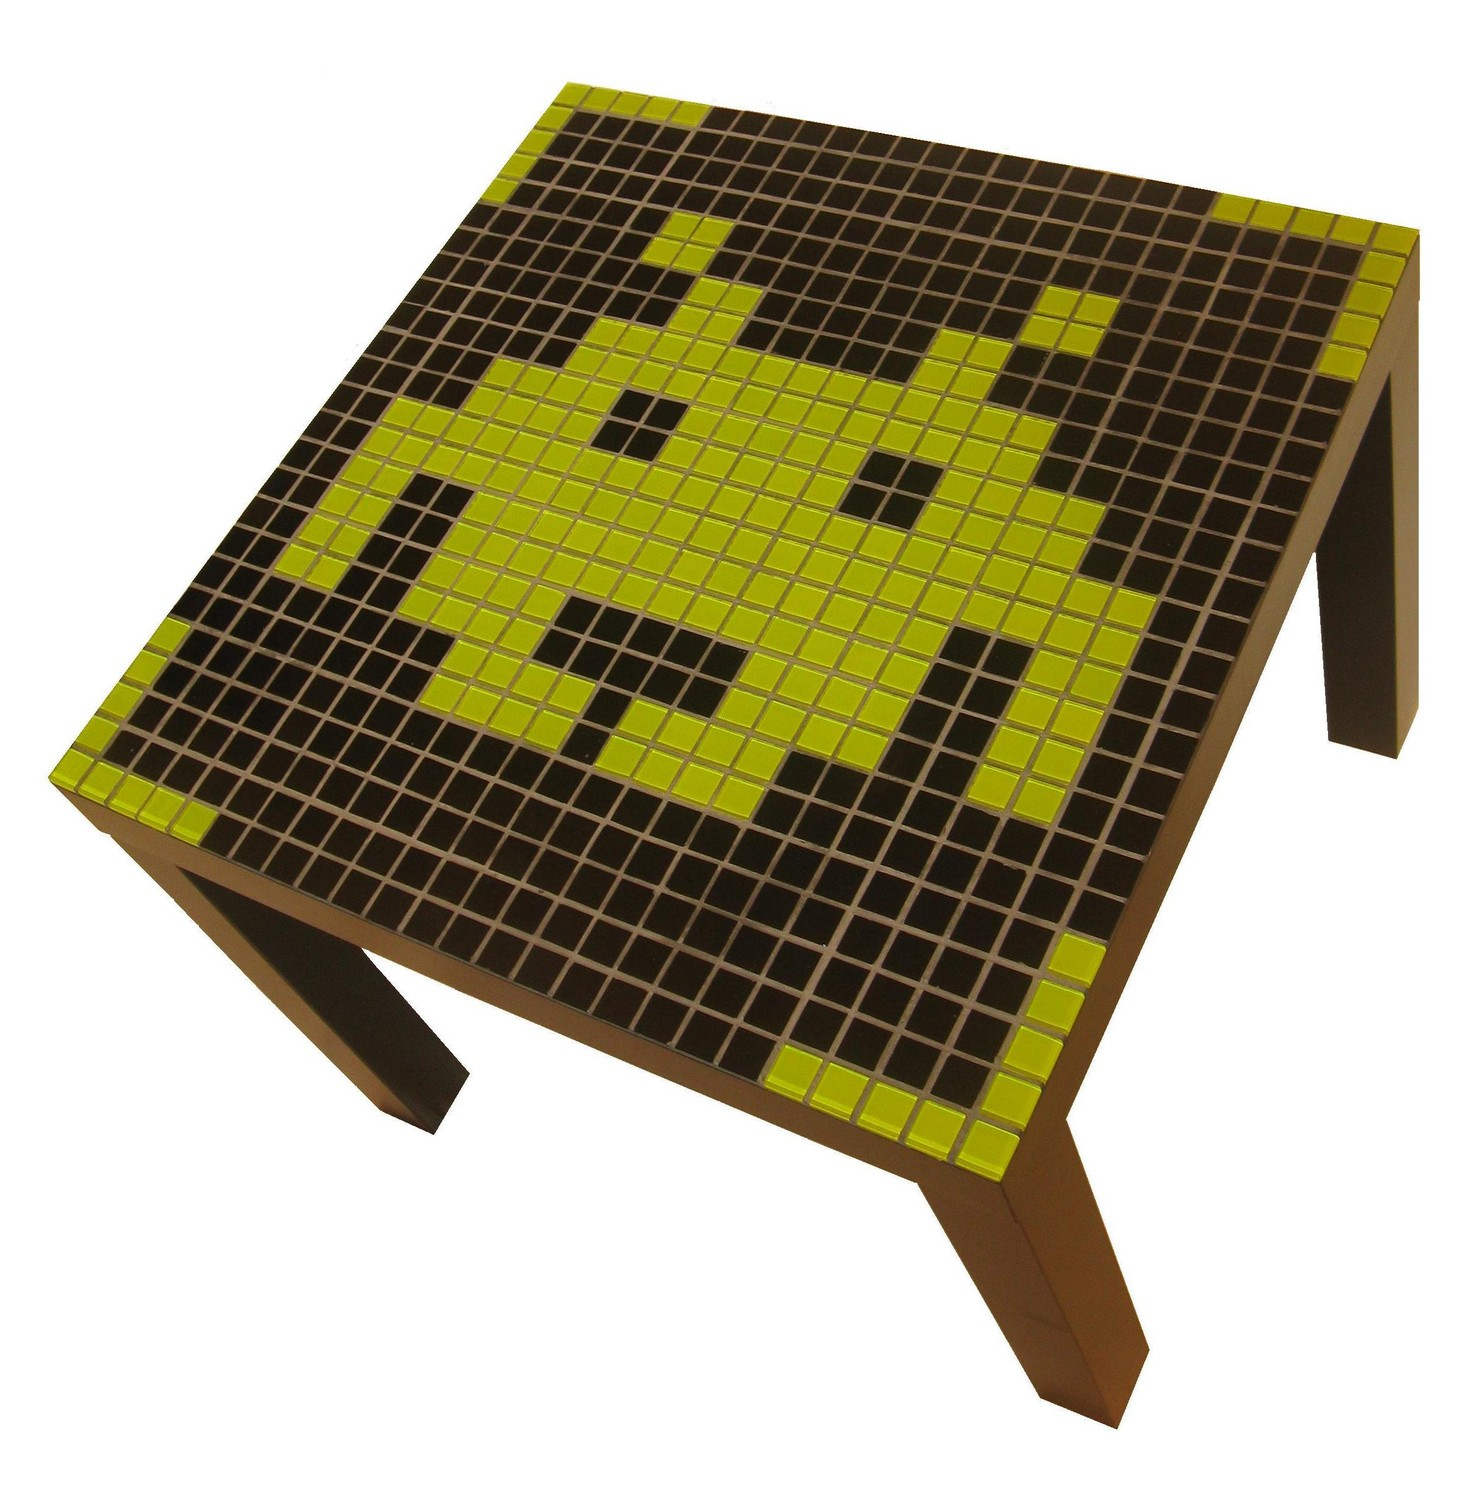 Is There A Space Invaders Coffee Table Book As Well